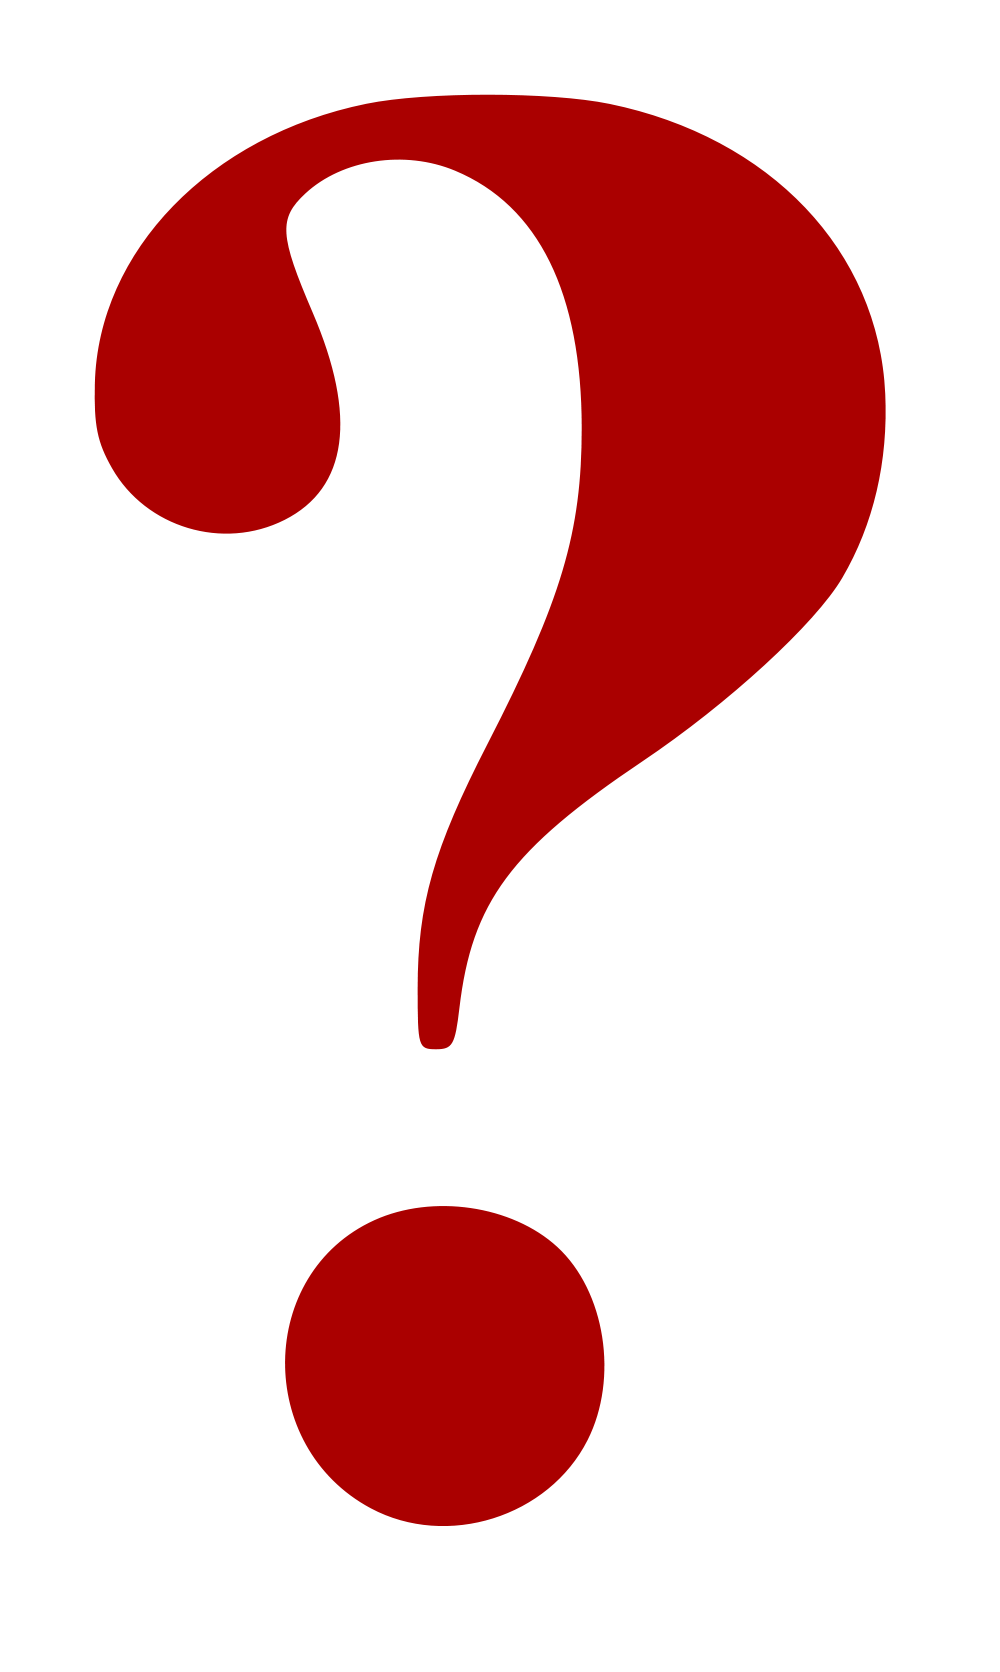 Clipart question marks